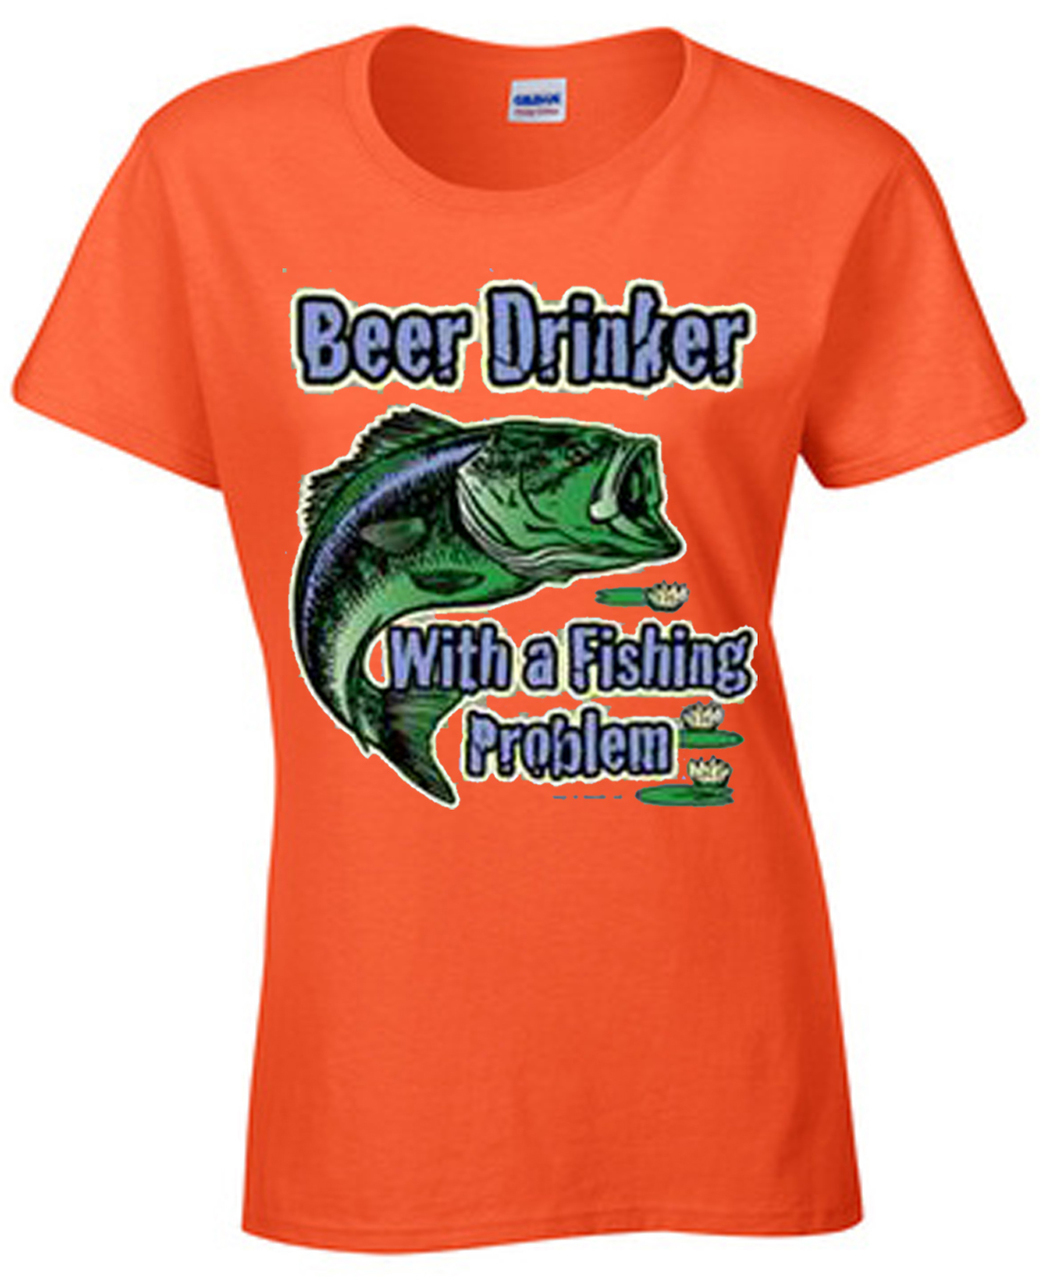 Beer Drinker With A Fishing Problem T-Shirt